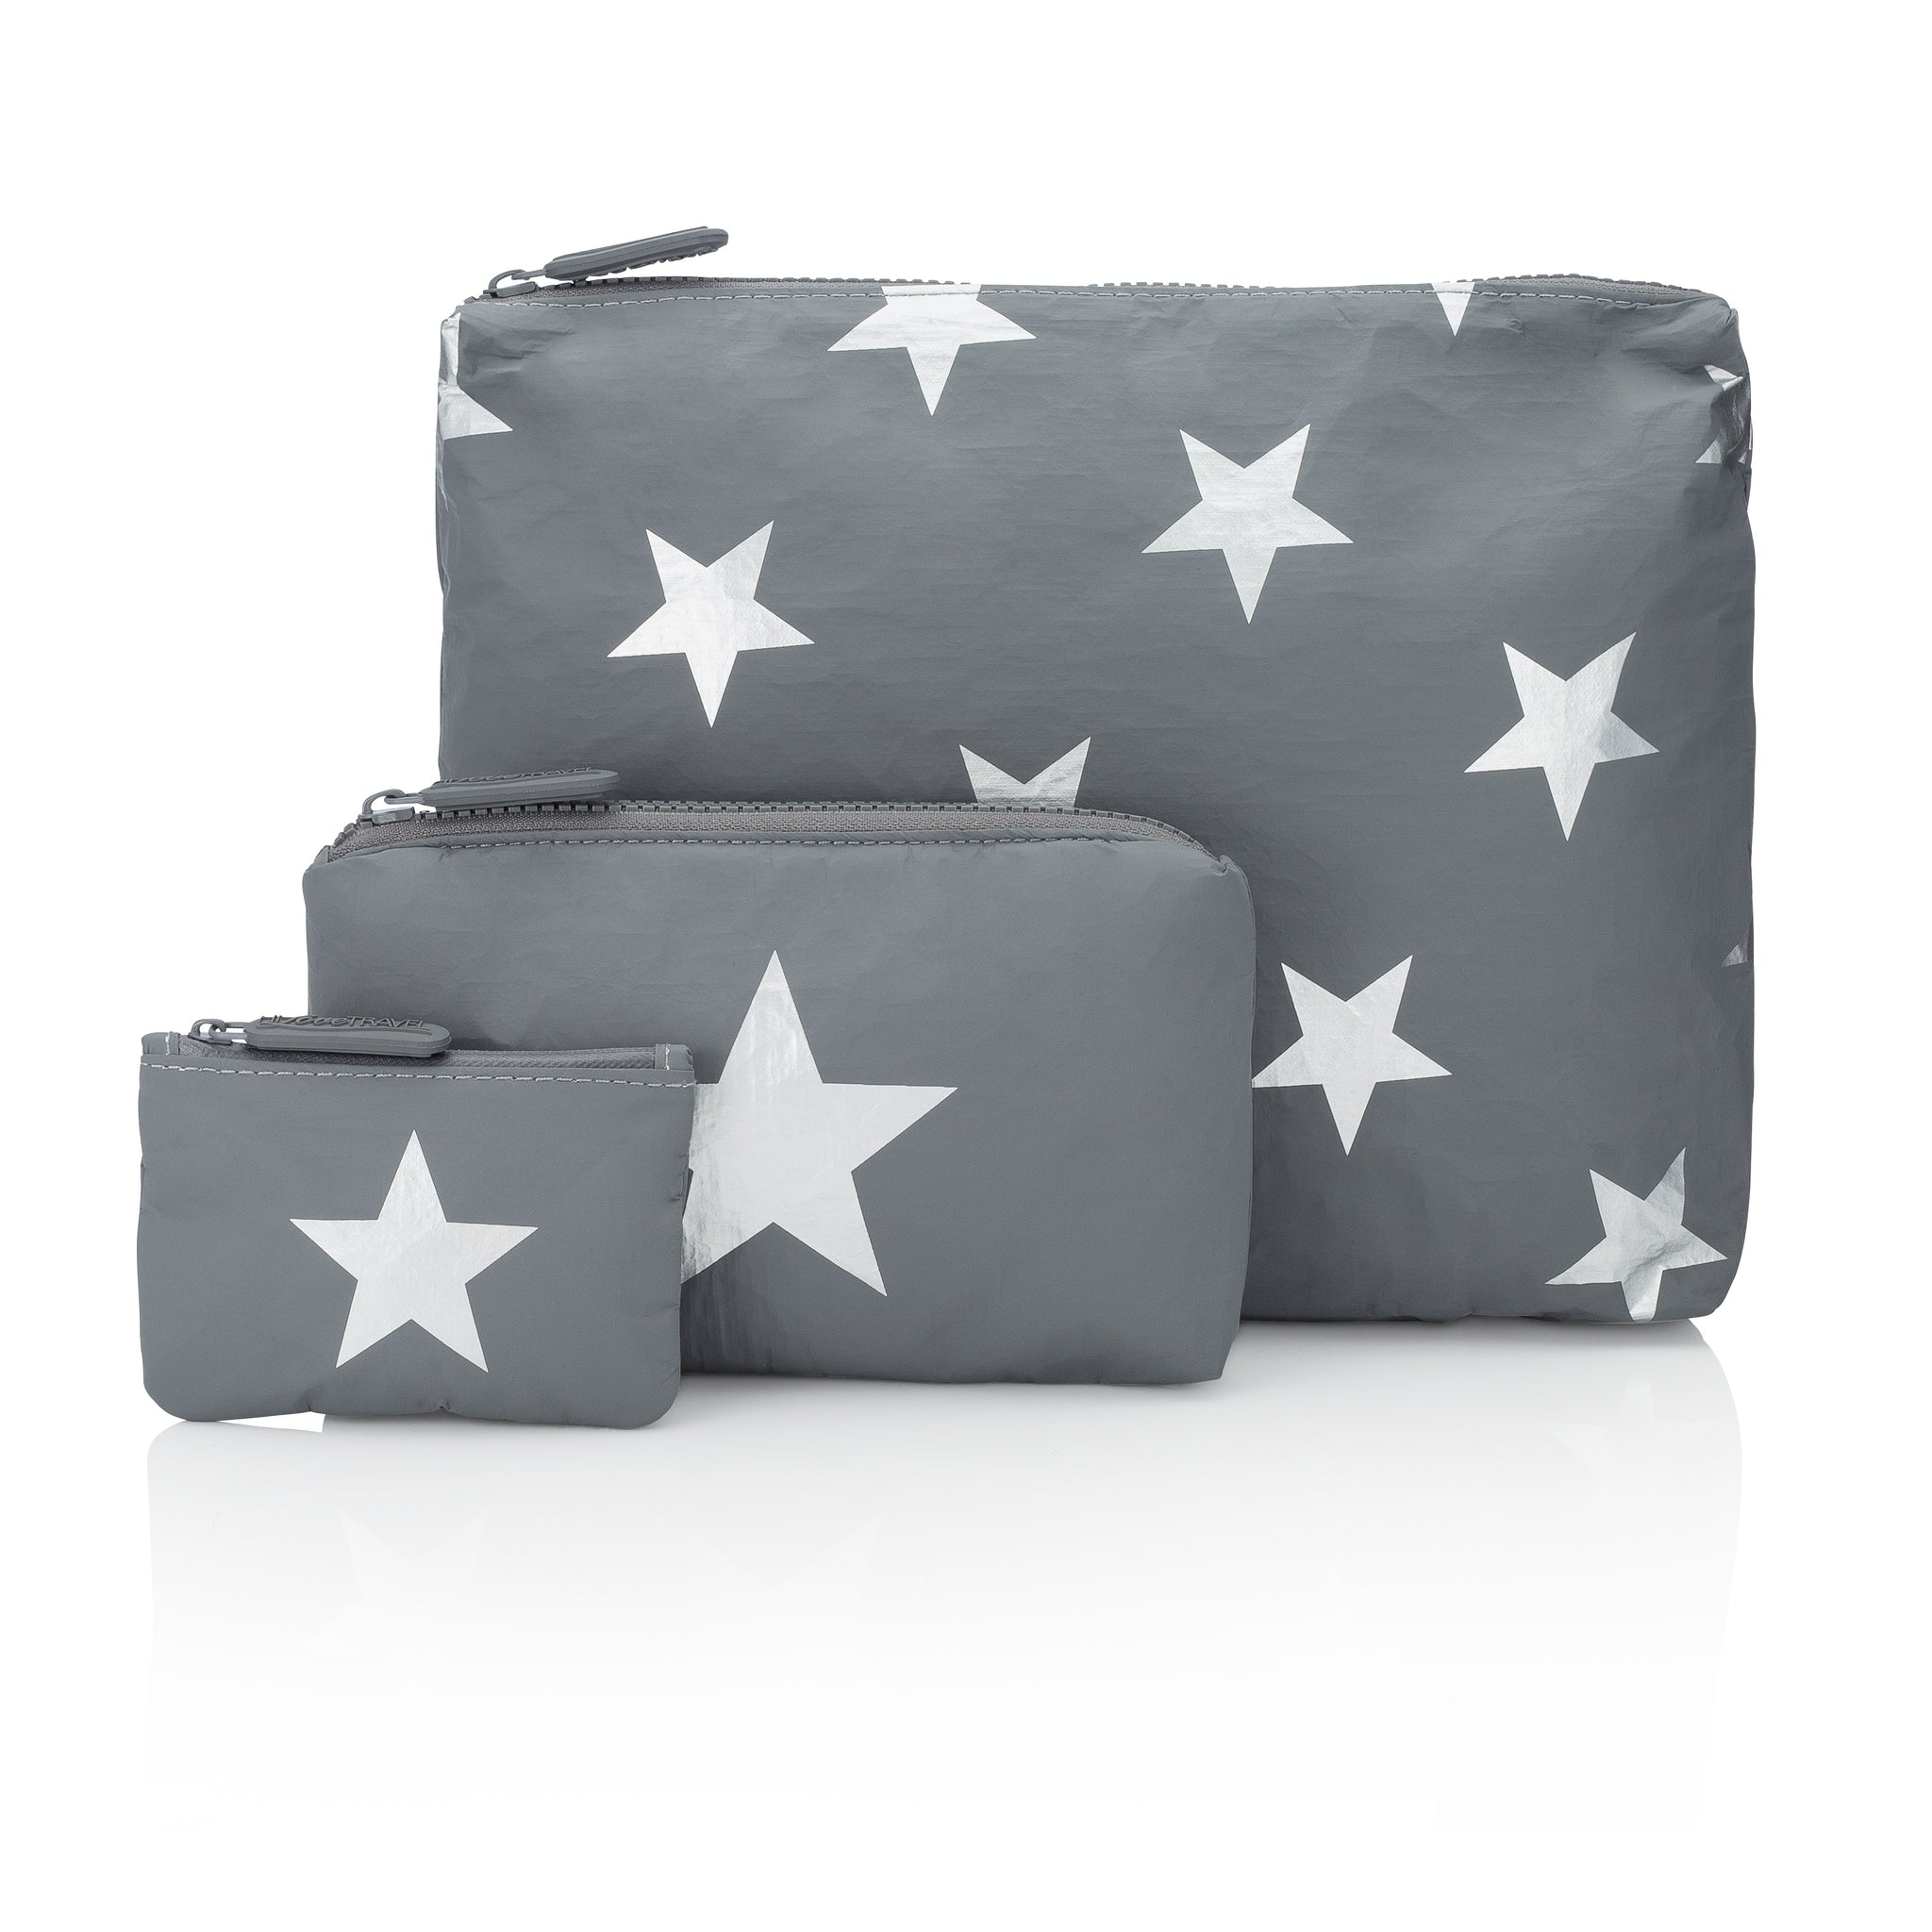 Set of Three Packs - Cool Gray HLT Collection with Metallic Silver Stars